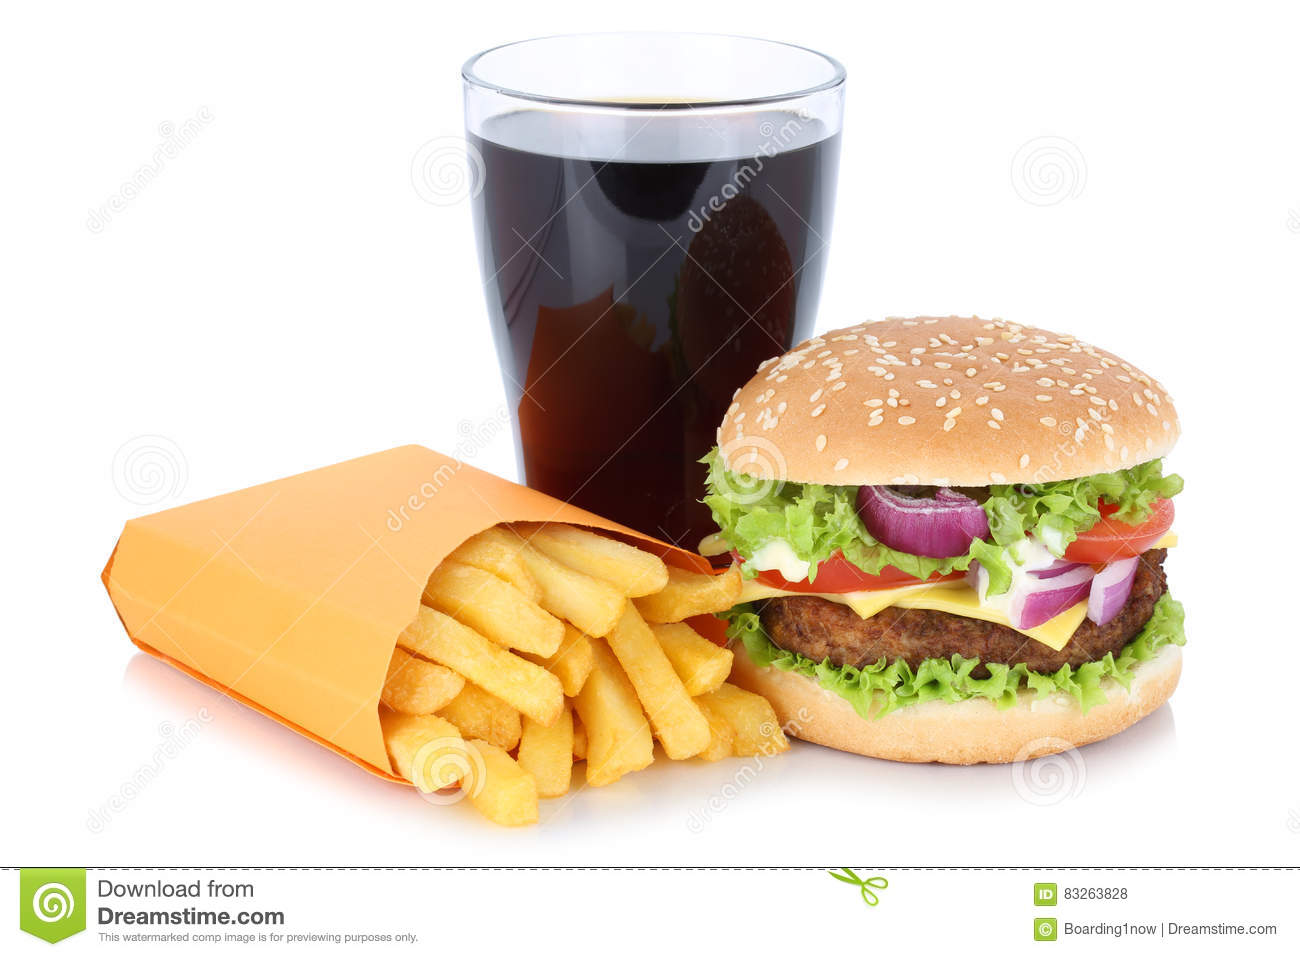 Cheeseburger hamburger and french fries menu meal combo for Lean cuisine vs fast food